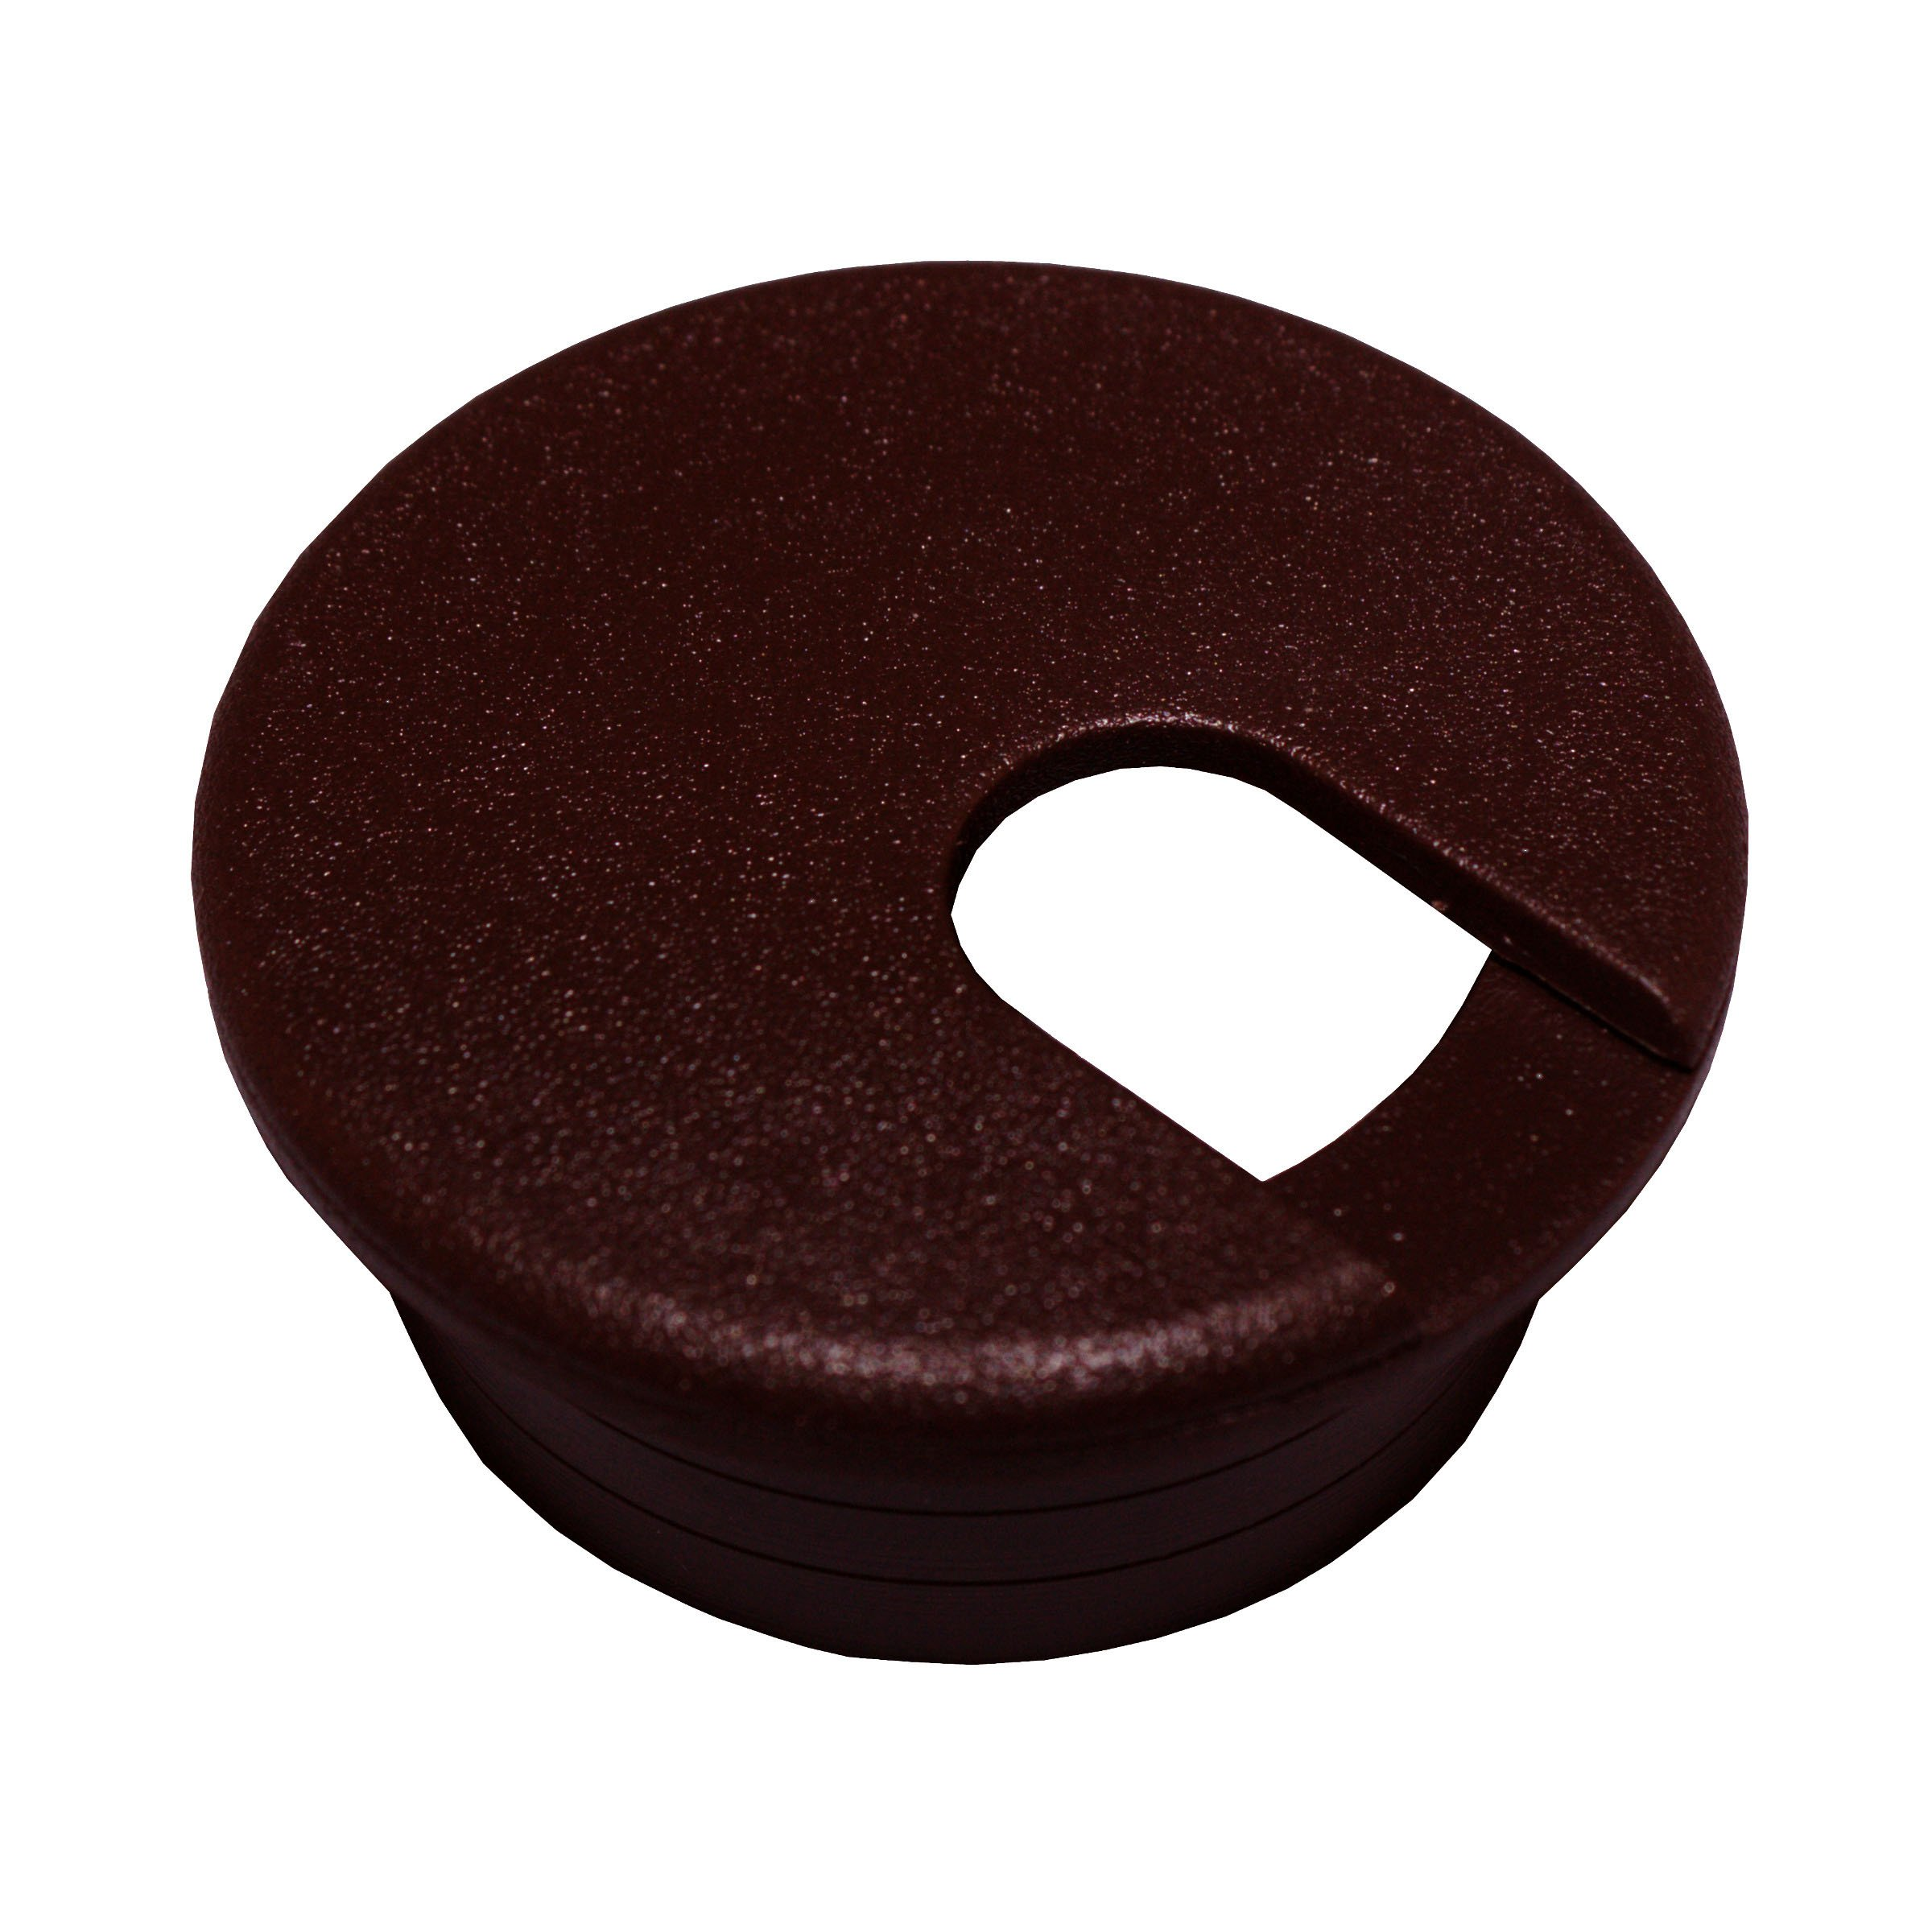 Click to view larger image Have one to sell? Sell now 25 Desk Cord Cable Wire Grommet Brown 1-1/2'' #1037